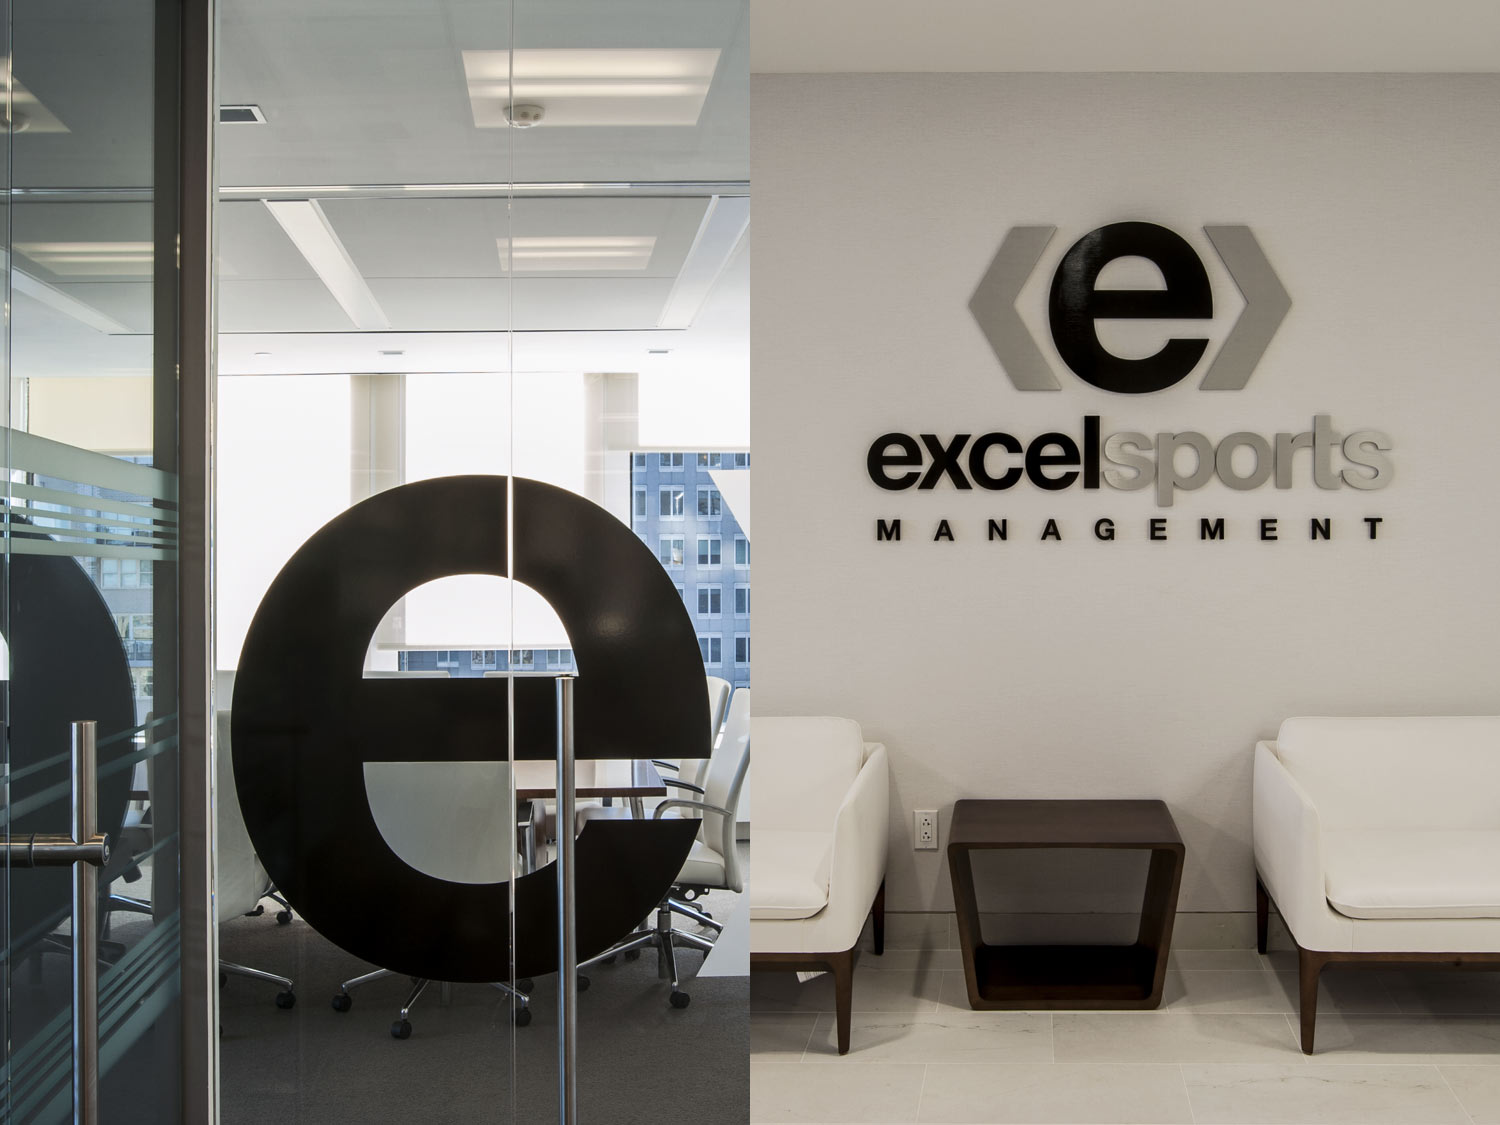 excel sports management  Sleek, Modern Workspace Design for Excel Sports Management